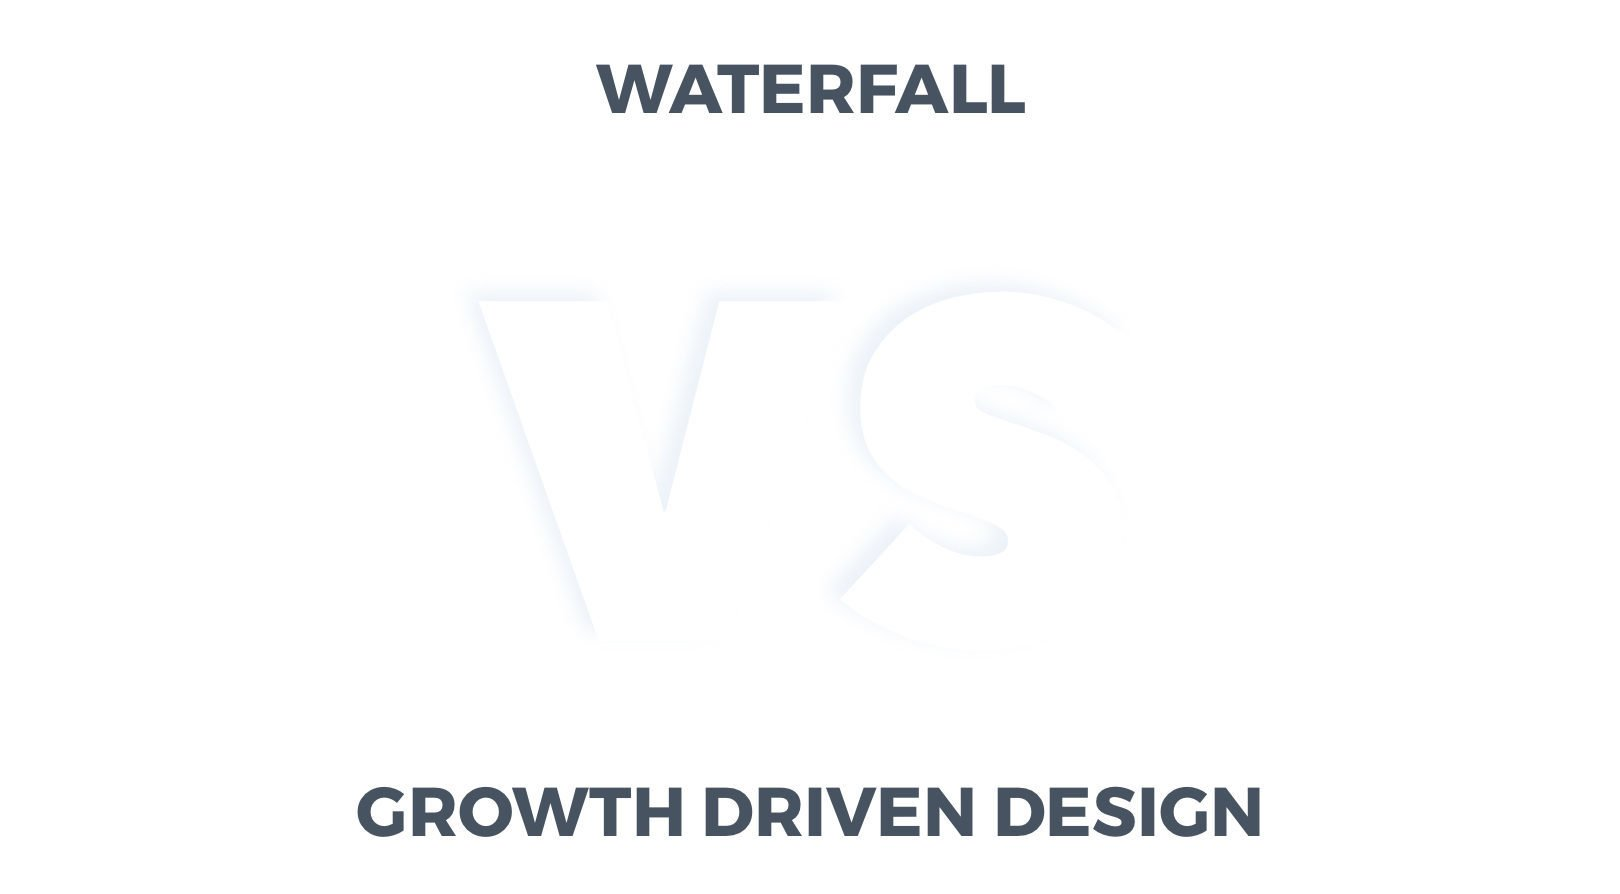 Waterfall Vs Gdd